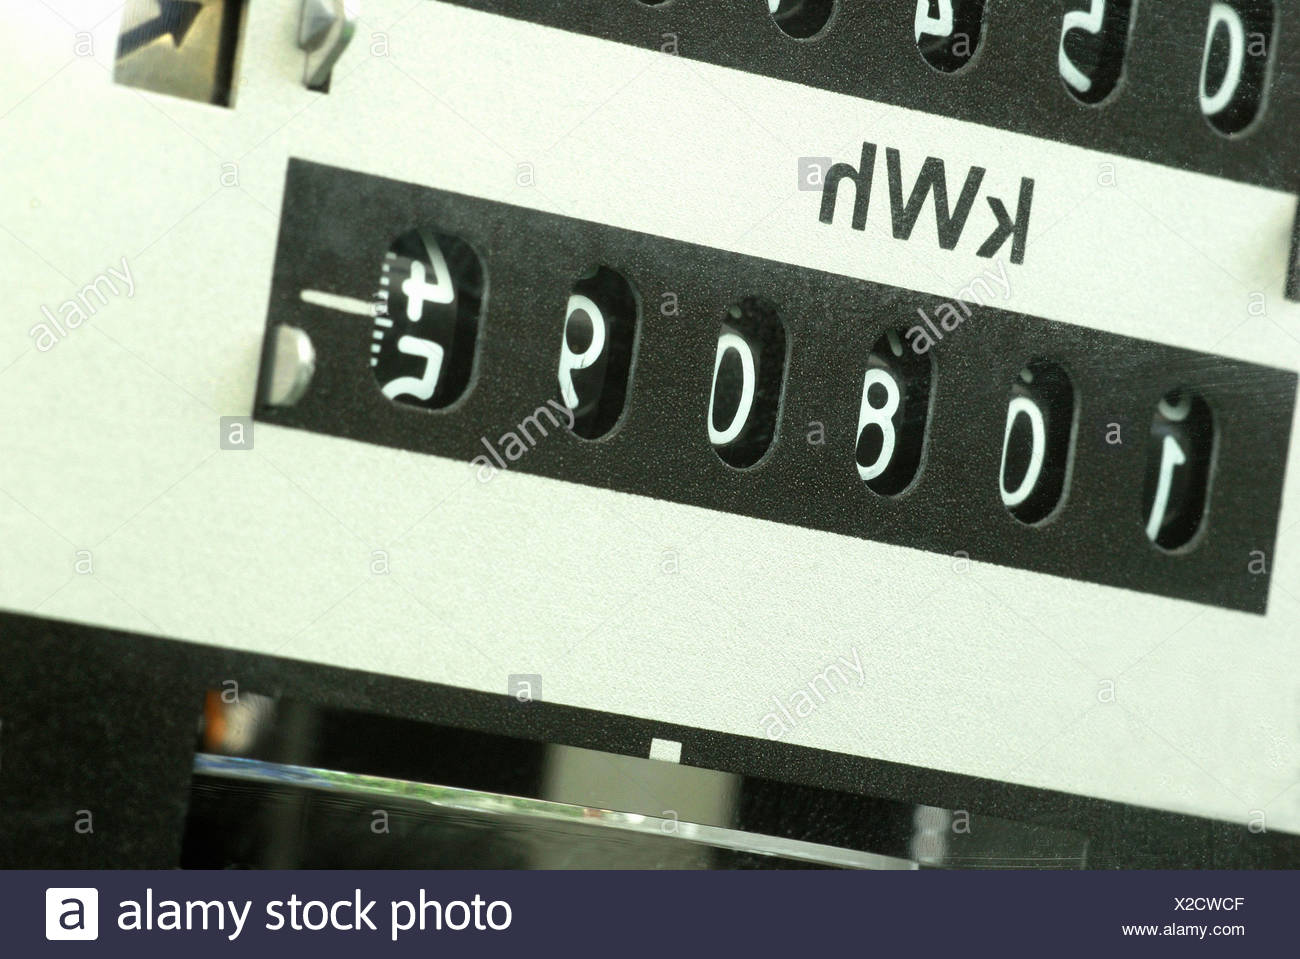 Electricity meter - Stock Image